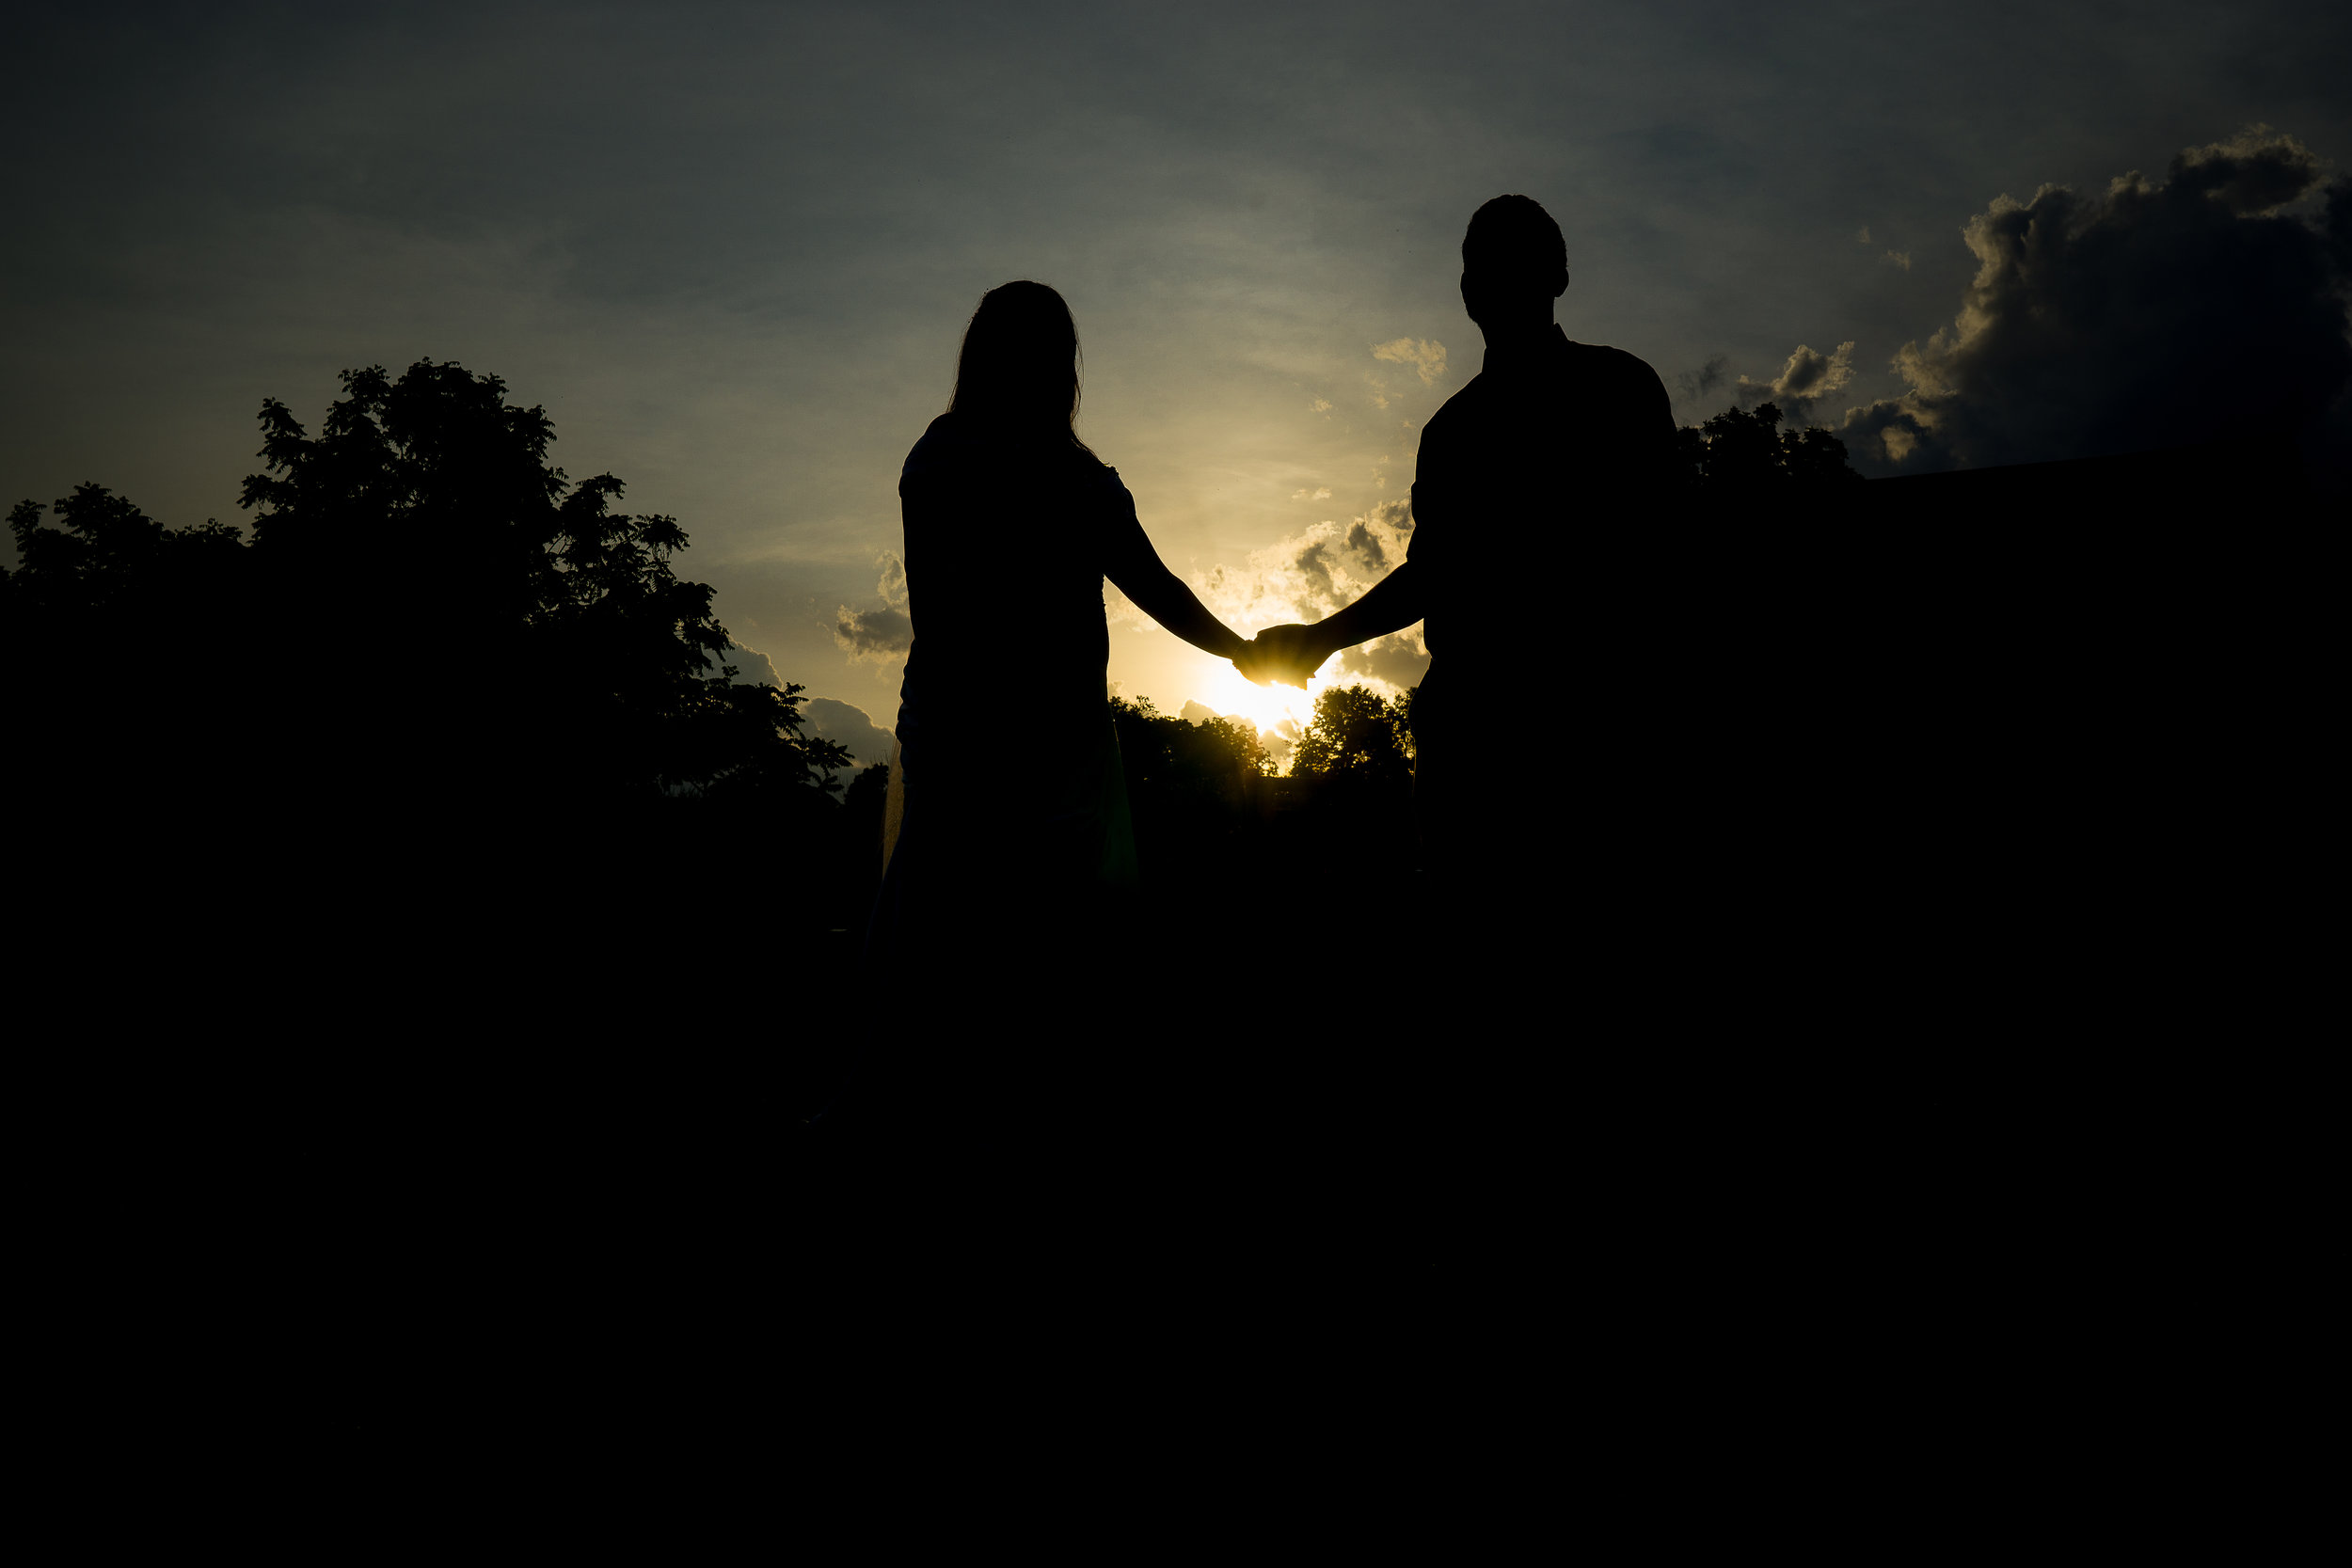 silhouette wedding photo gettysburg pa